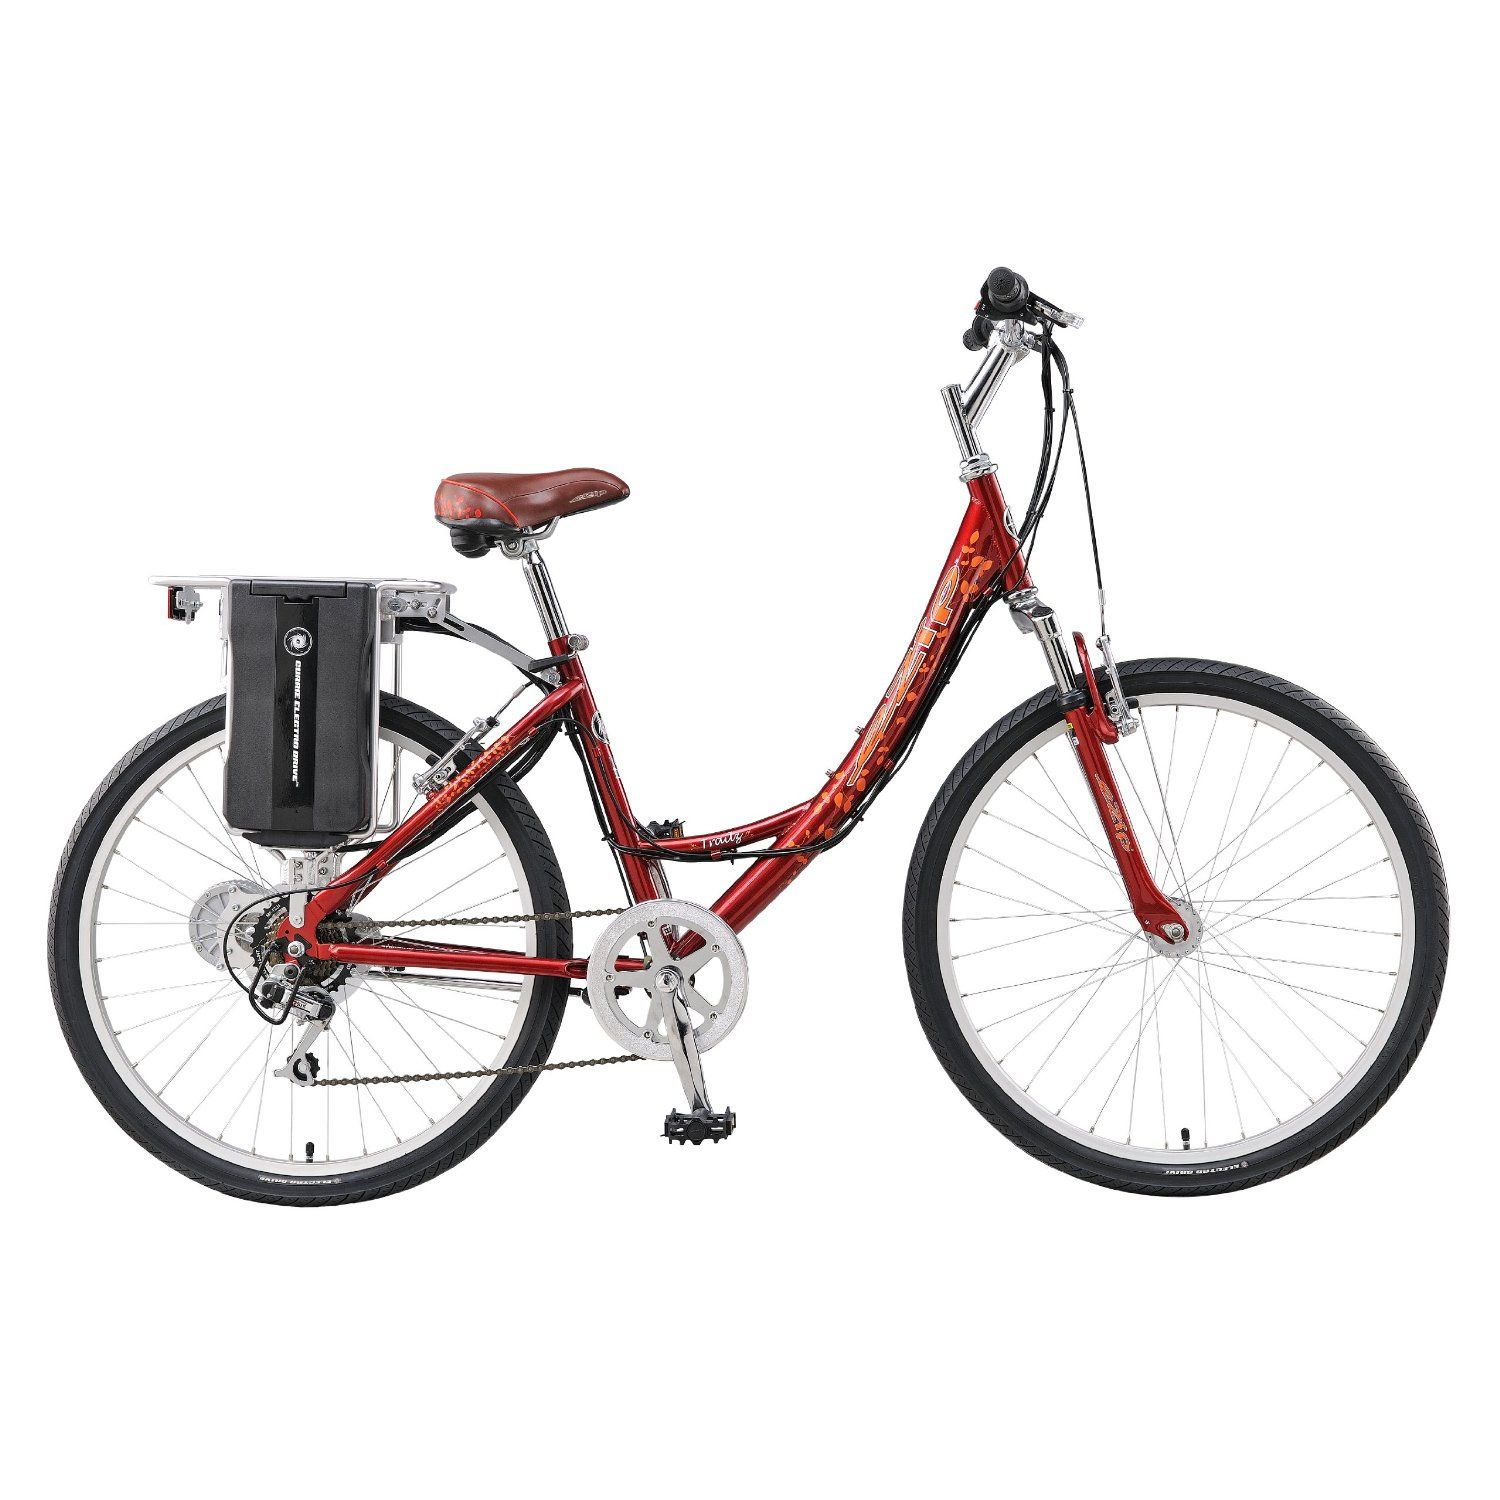 So I Need This For School Bicycle Electric Bicycle Electric Bike